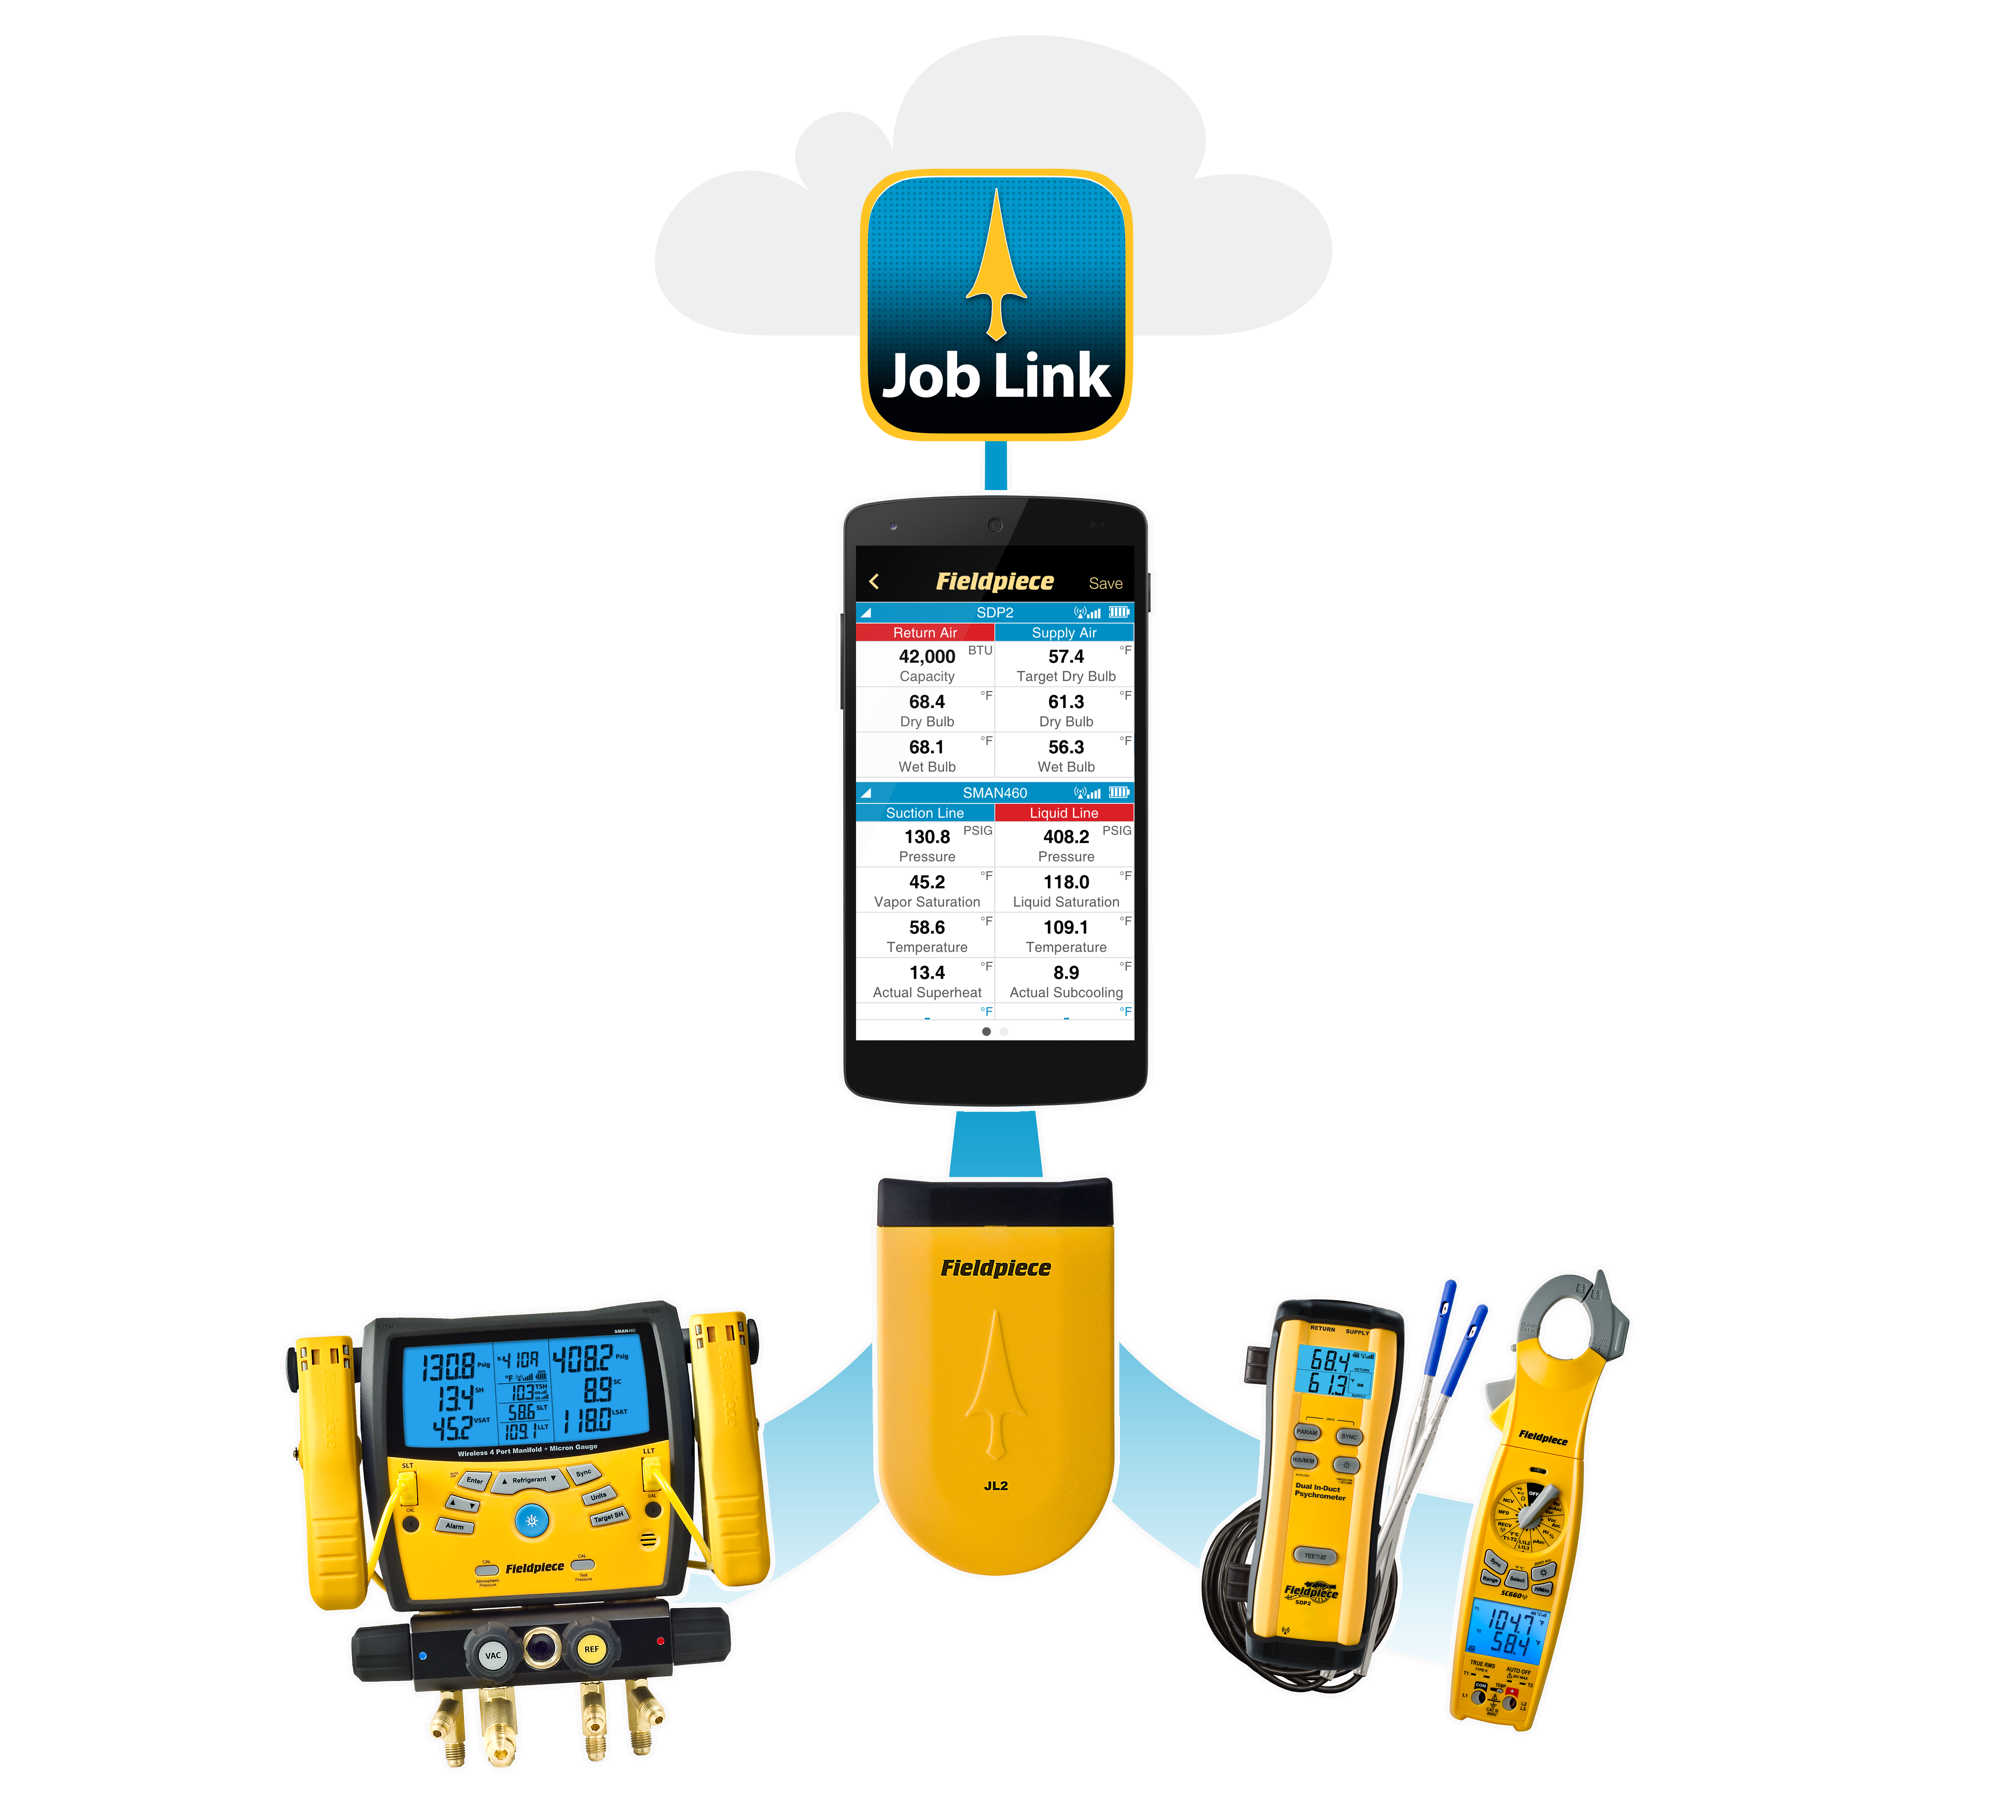 Fieldpiece Job Link